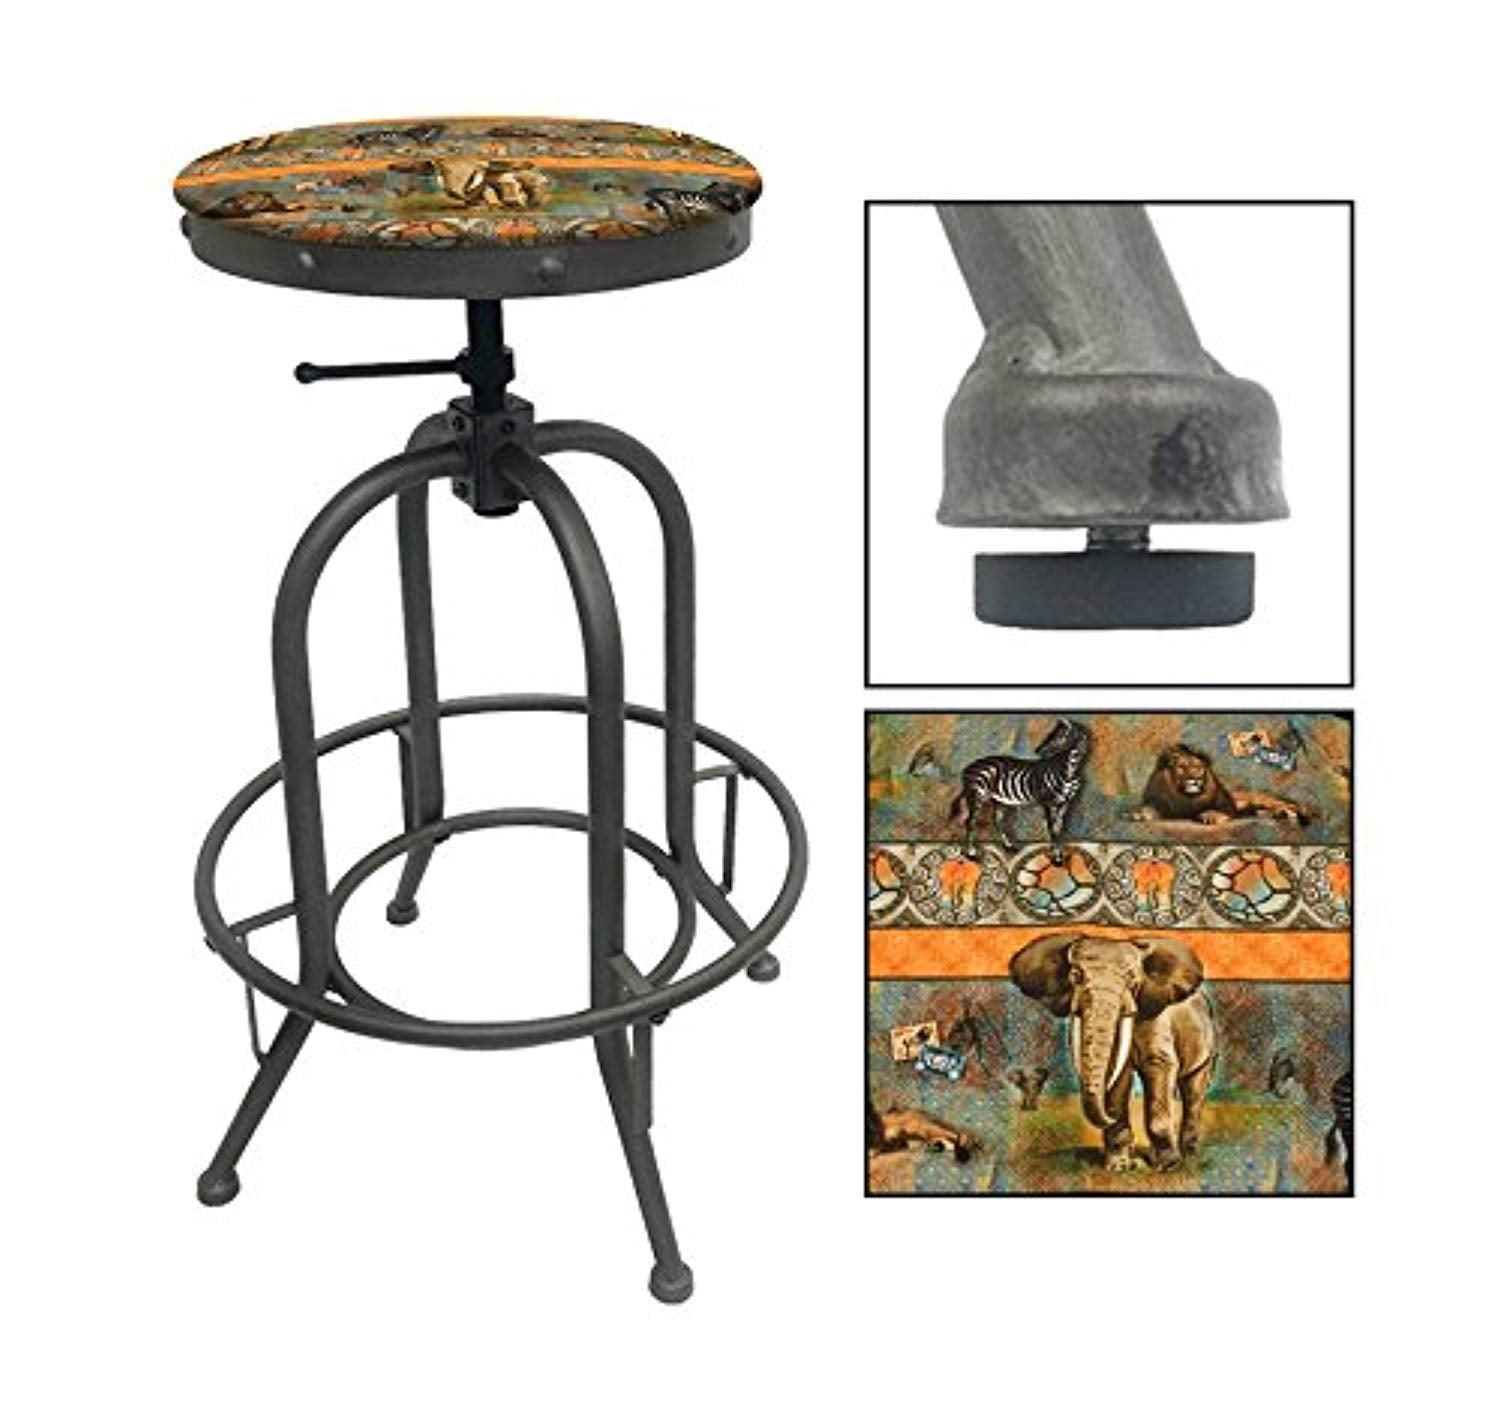 "1 - Adjustable 26""- 30"" Tall Rustic Metal Swivel Seat Bar Stool Featuring Your Choice of a Novelty Themed Seat Cushion (African Safari)"